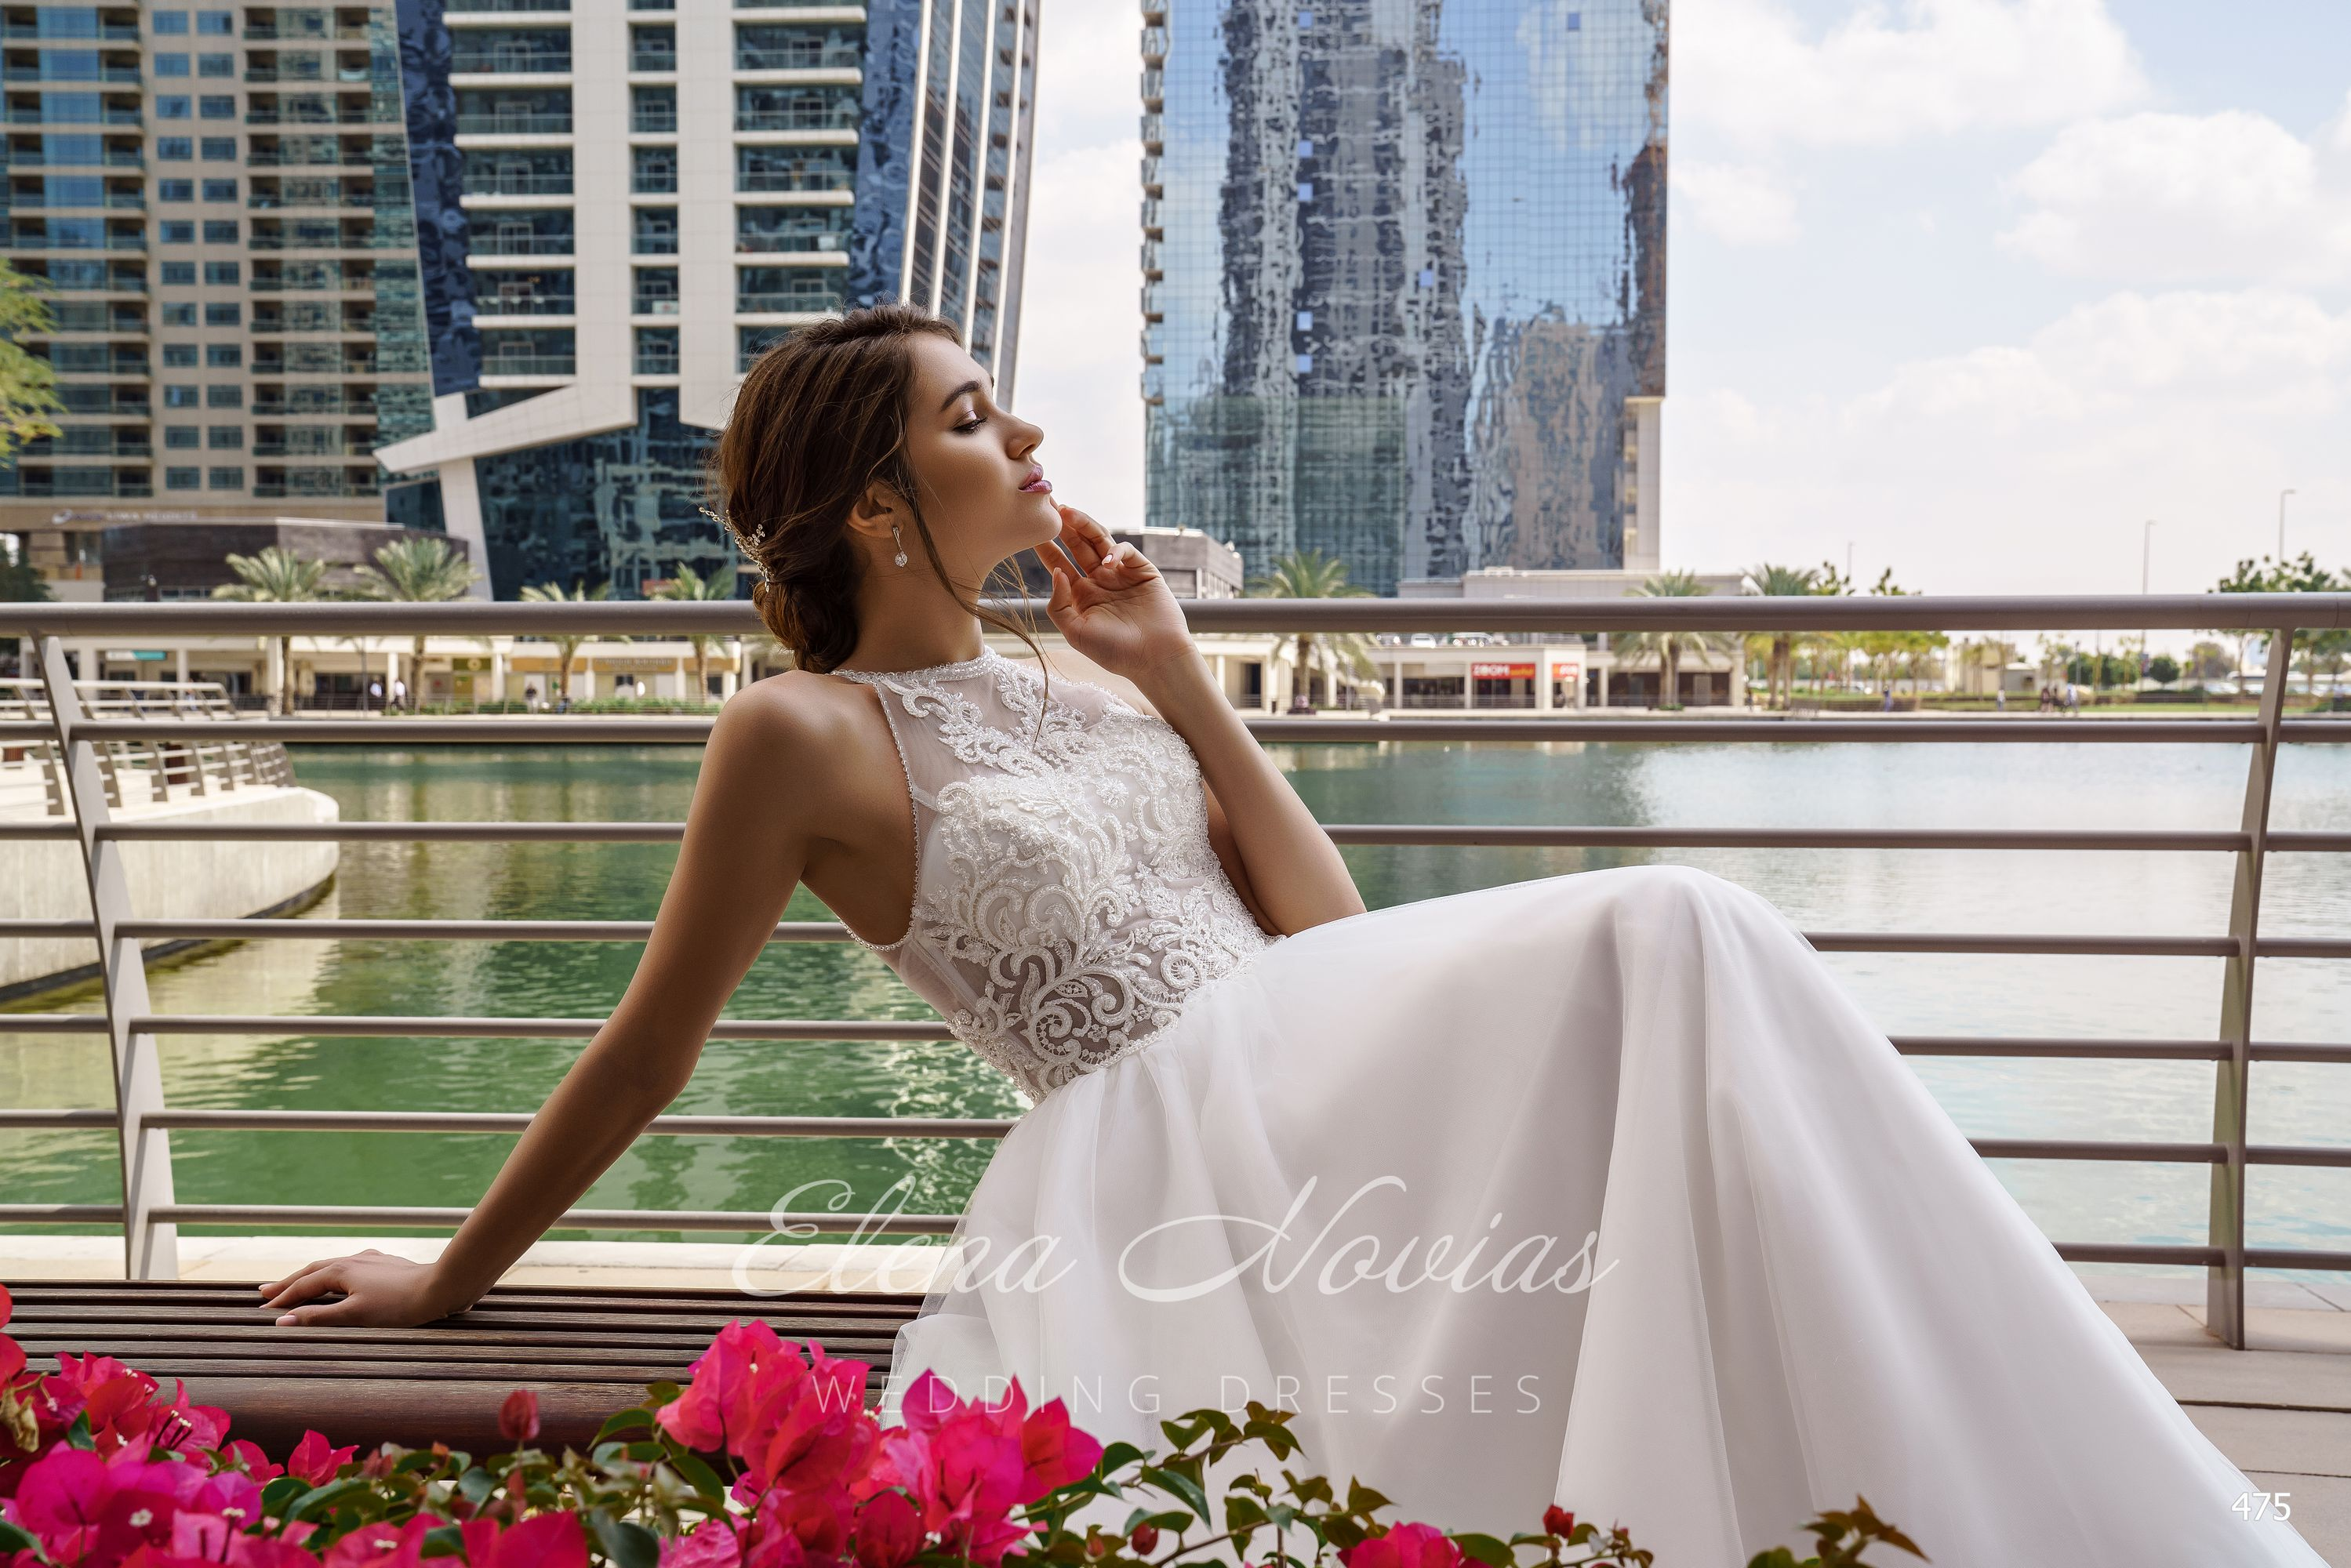 Wedding dresses 475 3